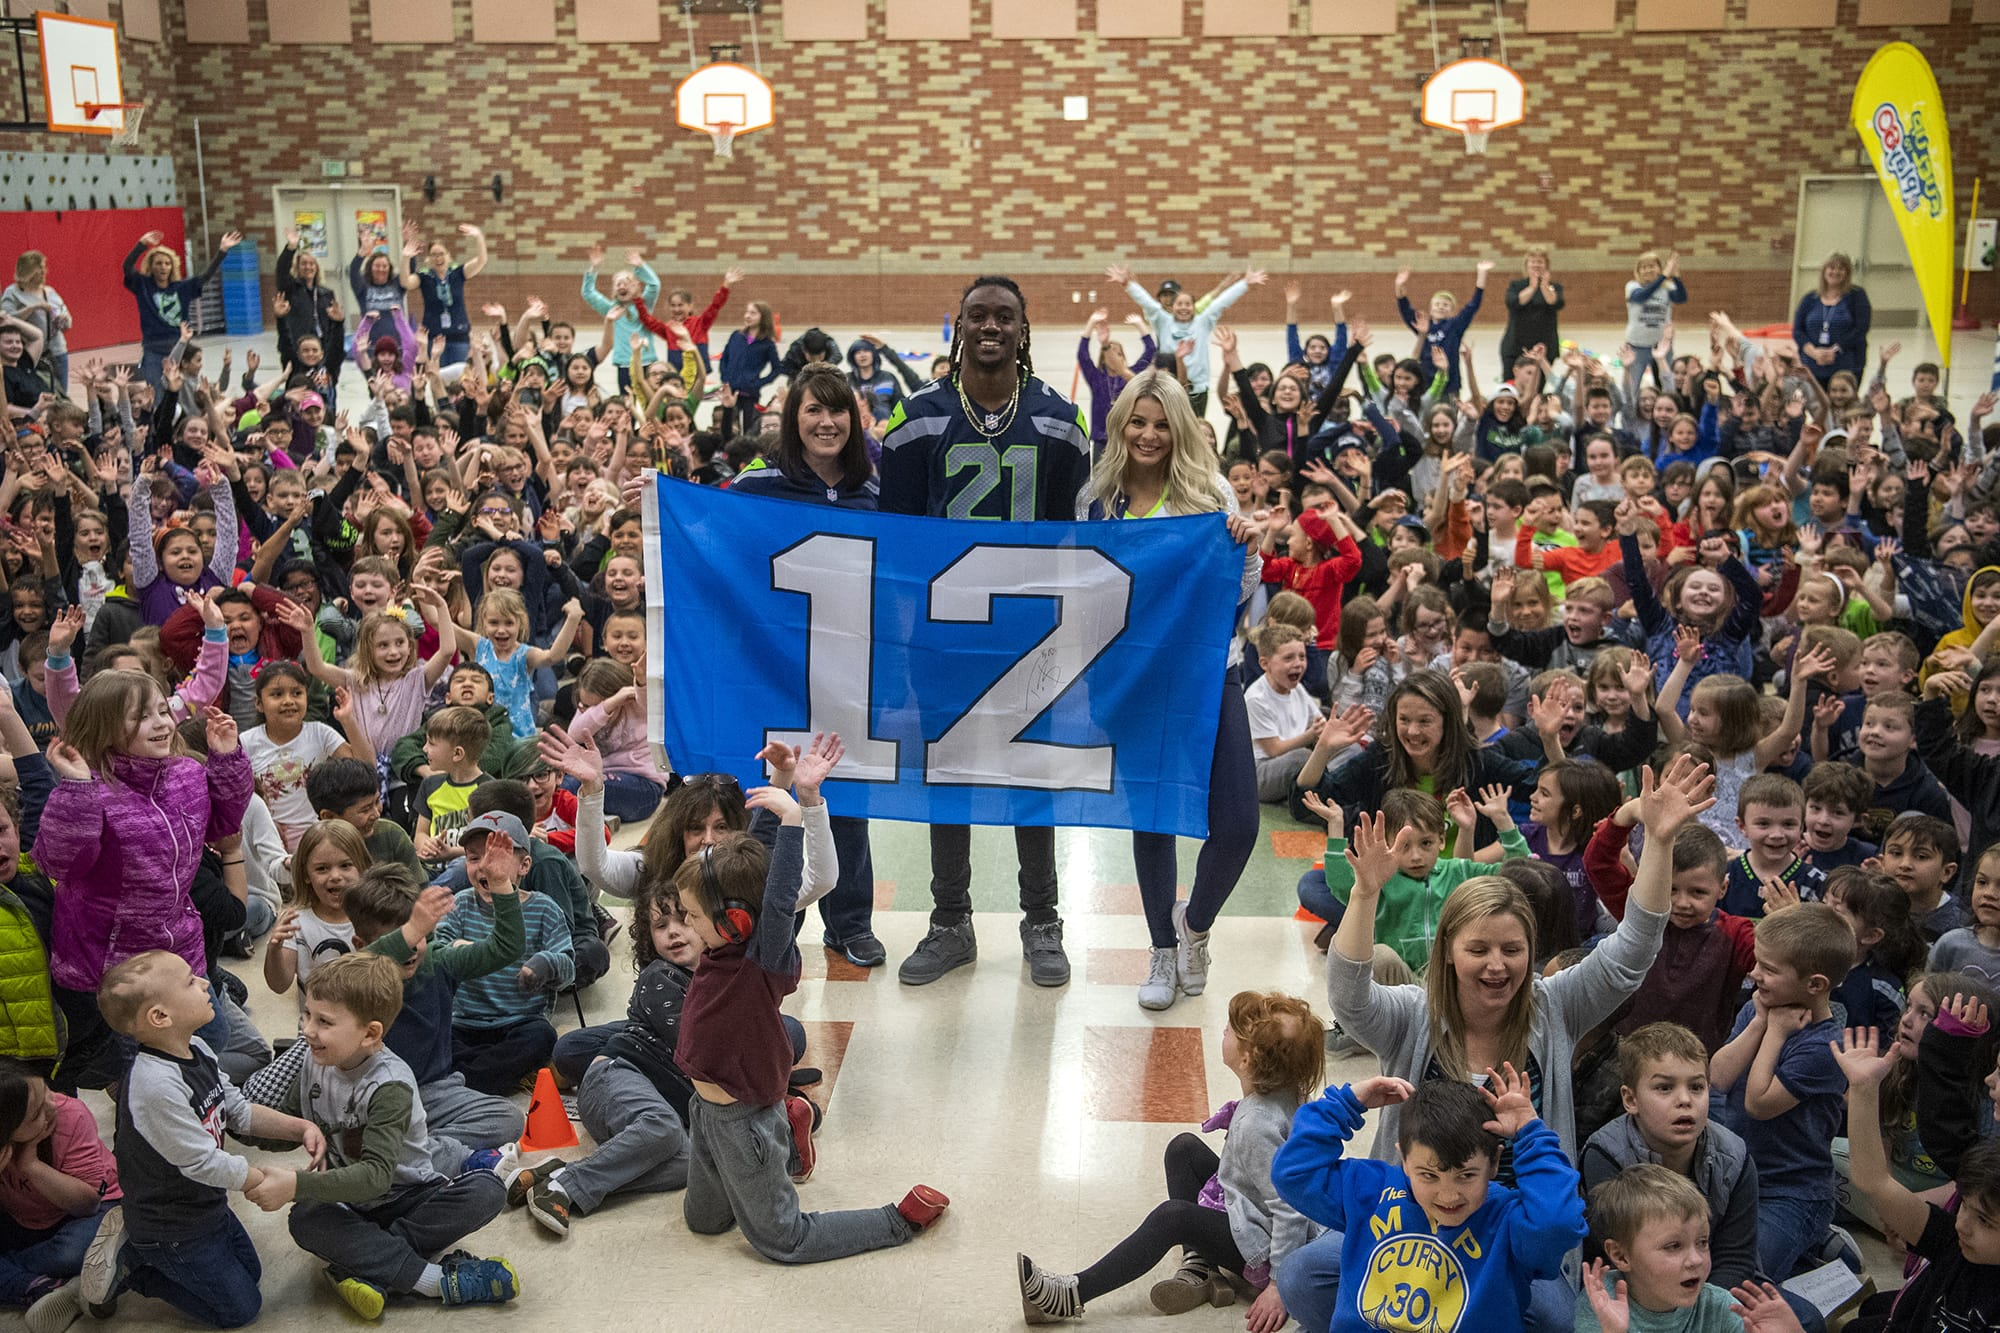 York Elementary School principle Dawn Harris, left, Seahawks cornerback Tre Flowers, center, and Seahawks dancer Kylie are pictured with the students at York Elementary School on Monday, March 9, 2020. The Dairy Farmers of Washington and the Seattle Seahawks visited the school on Monday to celebrate their new cafeteria milk dispensers. The self-serve milk dispensers use washable cups will help reduce the school's environmental impact.